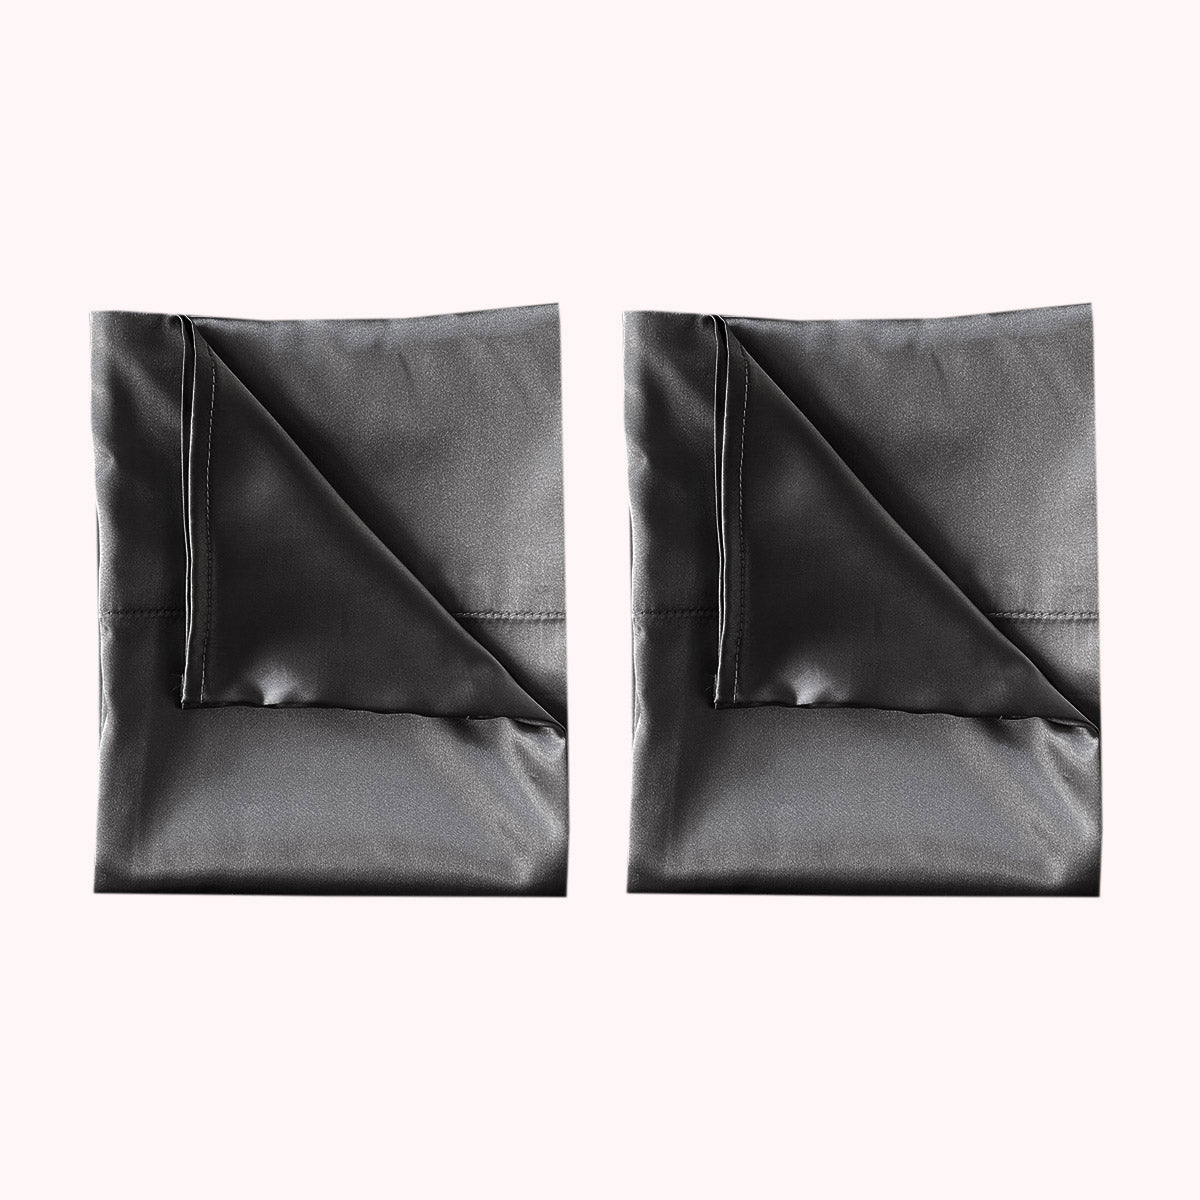 RISE Essential Satin Pillowcase - Charcoal Grey (2 Pack)